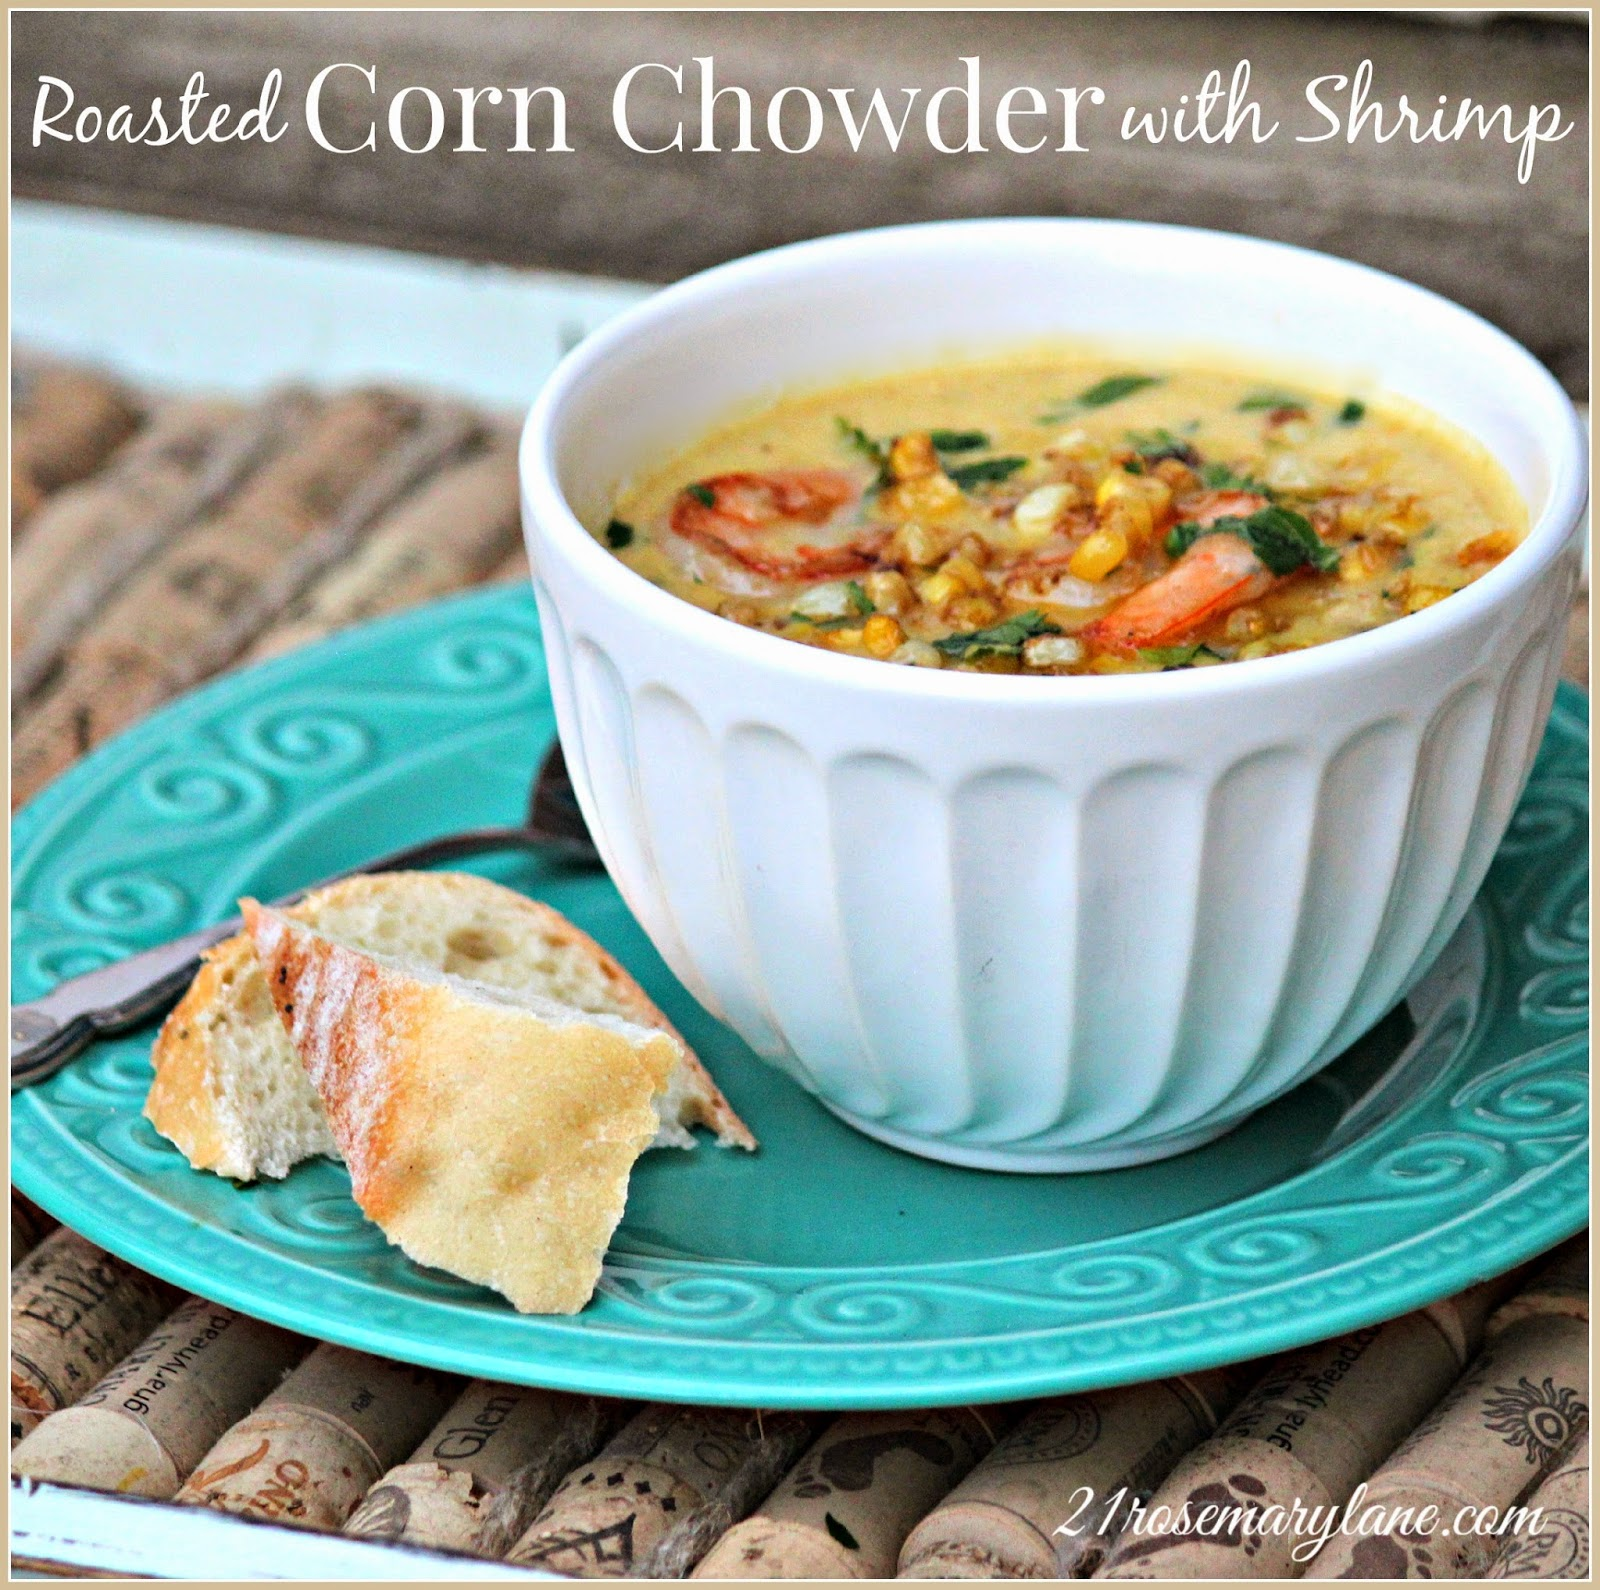 21 Rosemary Lane: Roasted Corn Chowder with Shrimp